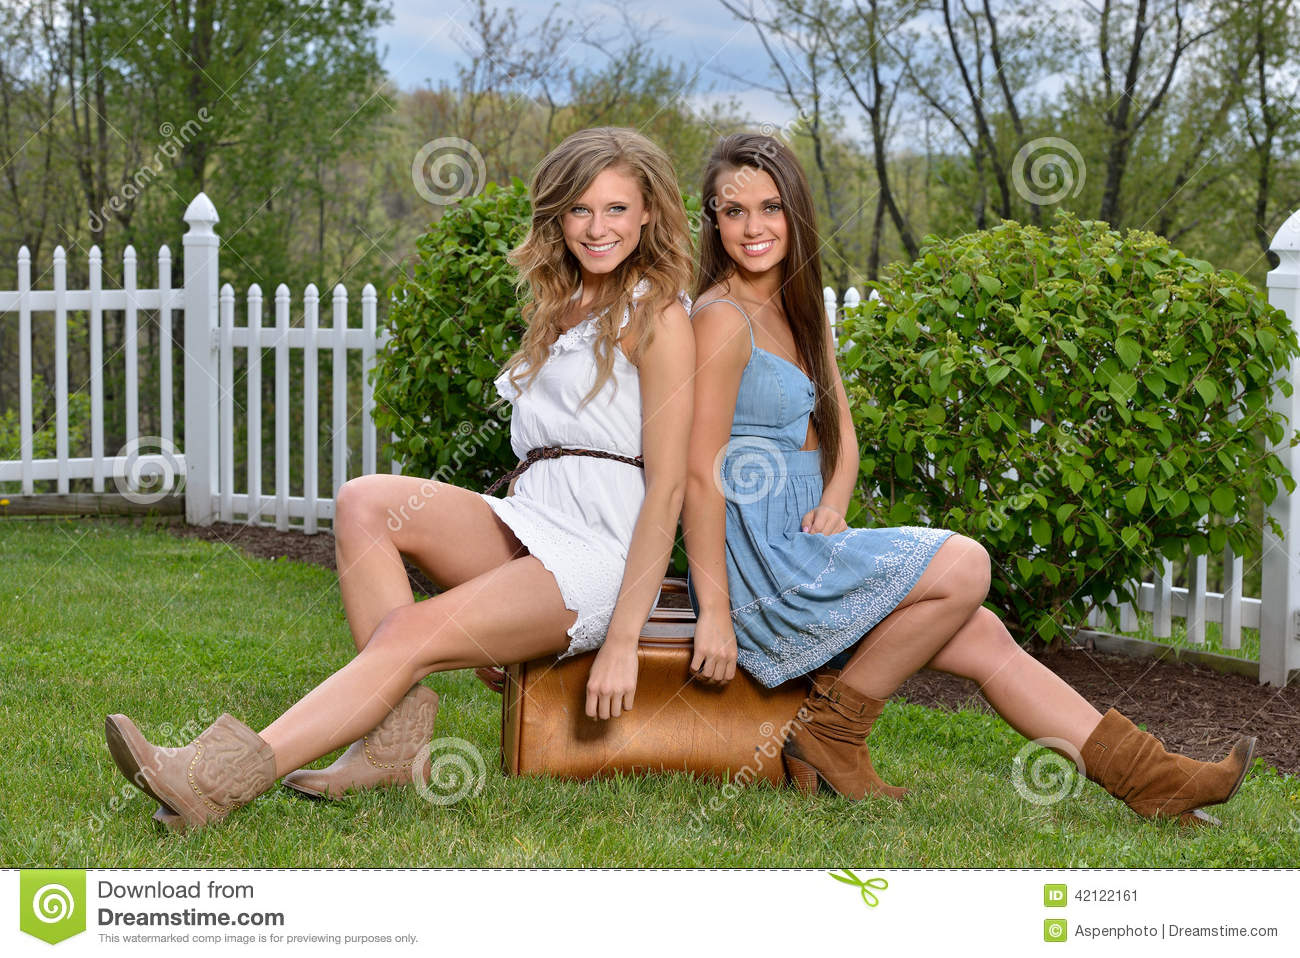 afd92ad3e66 Stunning Young Women In Sundresses With Suitcase Stock Image - Image ...